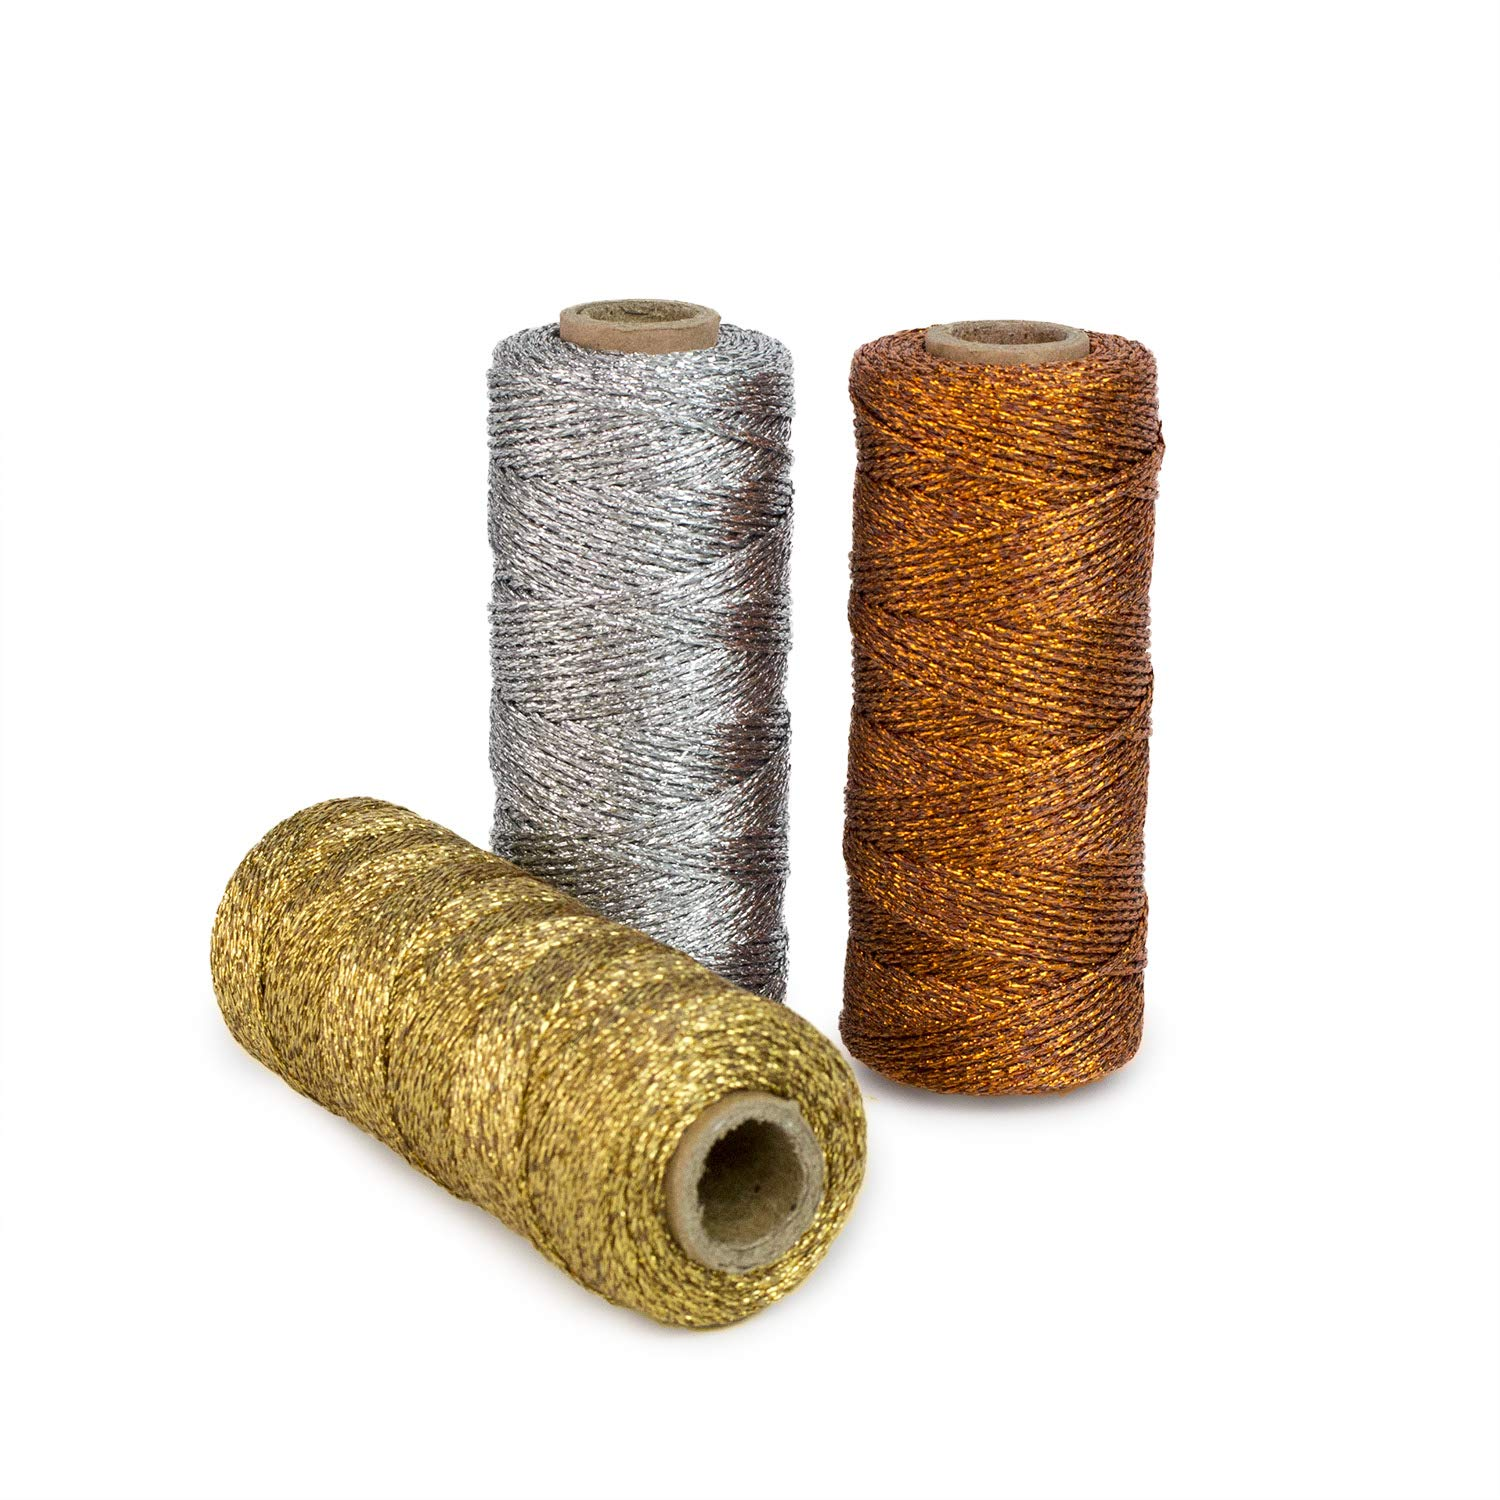 Ipalmay 100m Metallic Bakers Twine Spool 3-Ply for DIY Crafts Arts or Gift Wrapping 3 Pcs by Ipalmay